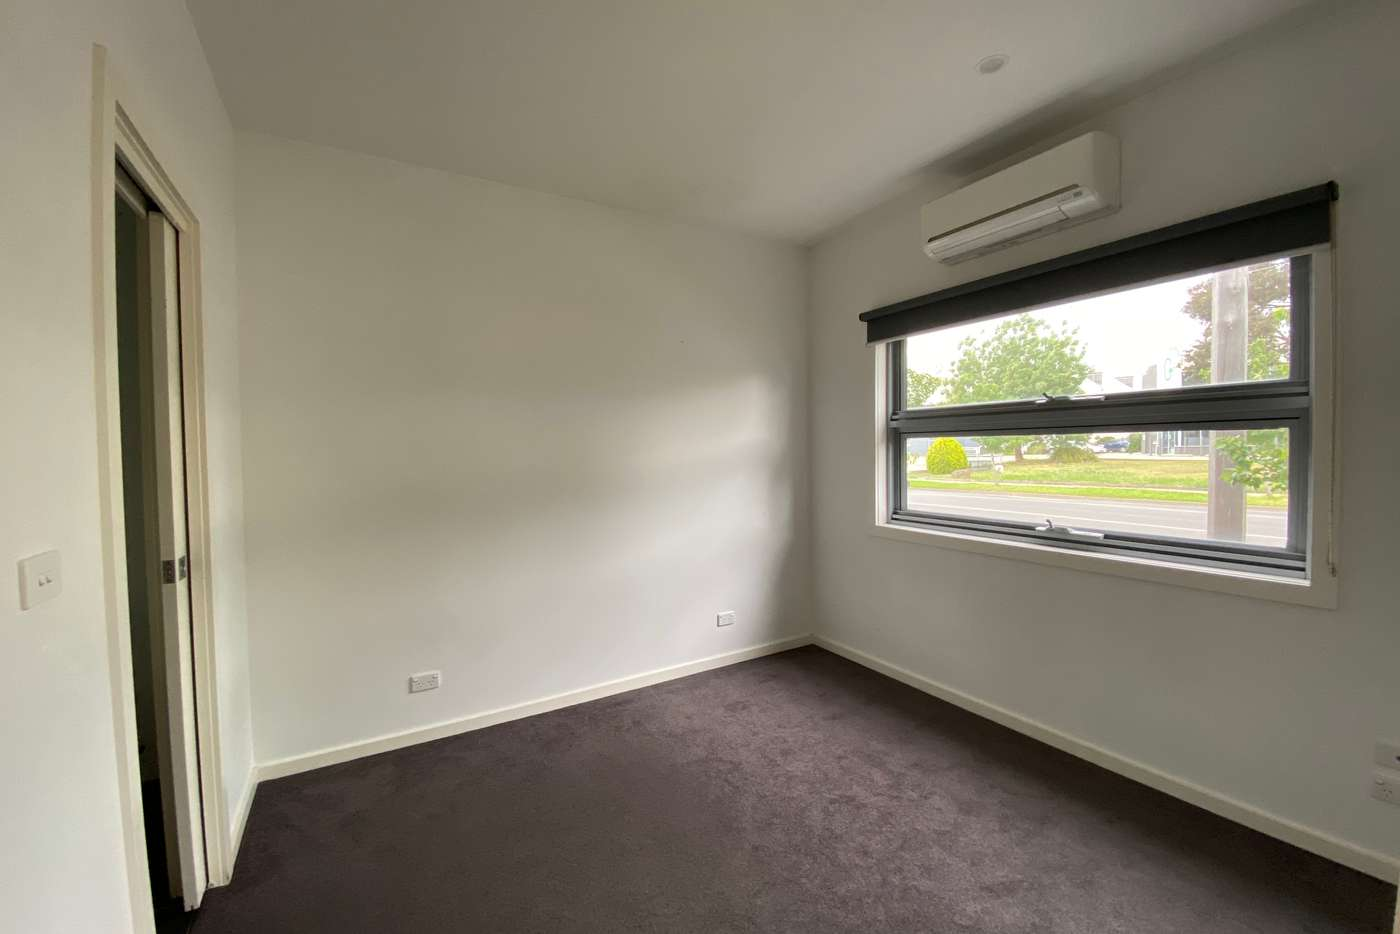 Sixth view of Homely townhouse listing, 2/82 Ashley  Street, West Footscray VIC 3012